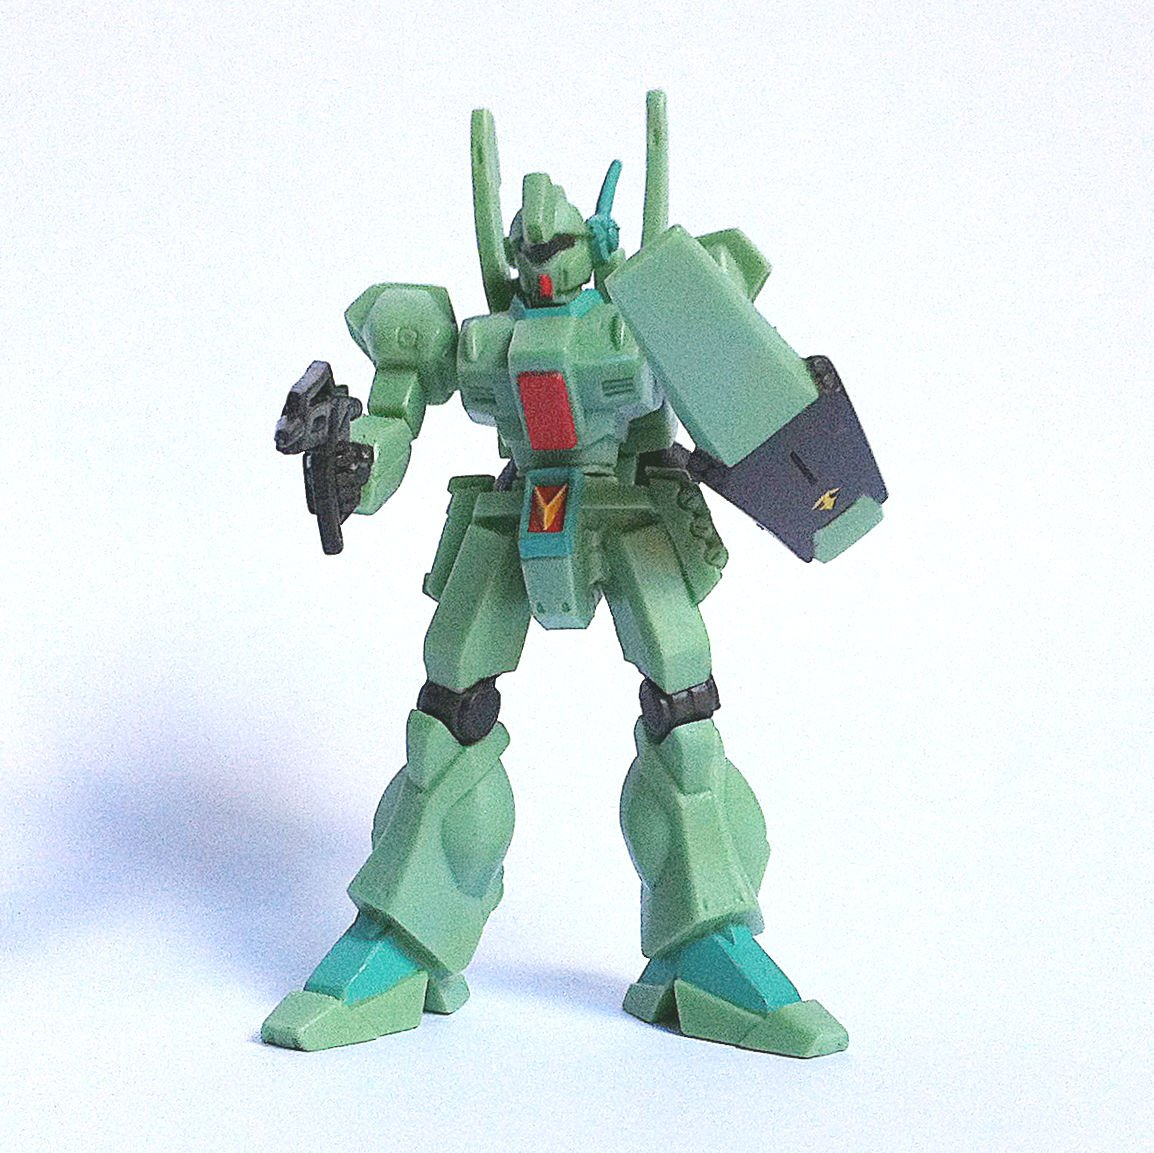 RGM-89 Jegan from HG Gundam MS Selection 24 by Bandai